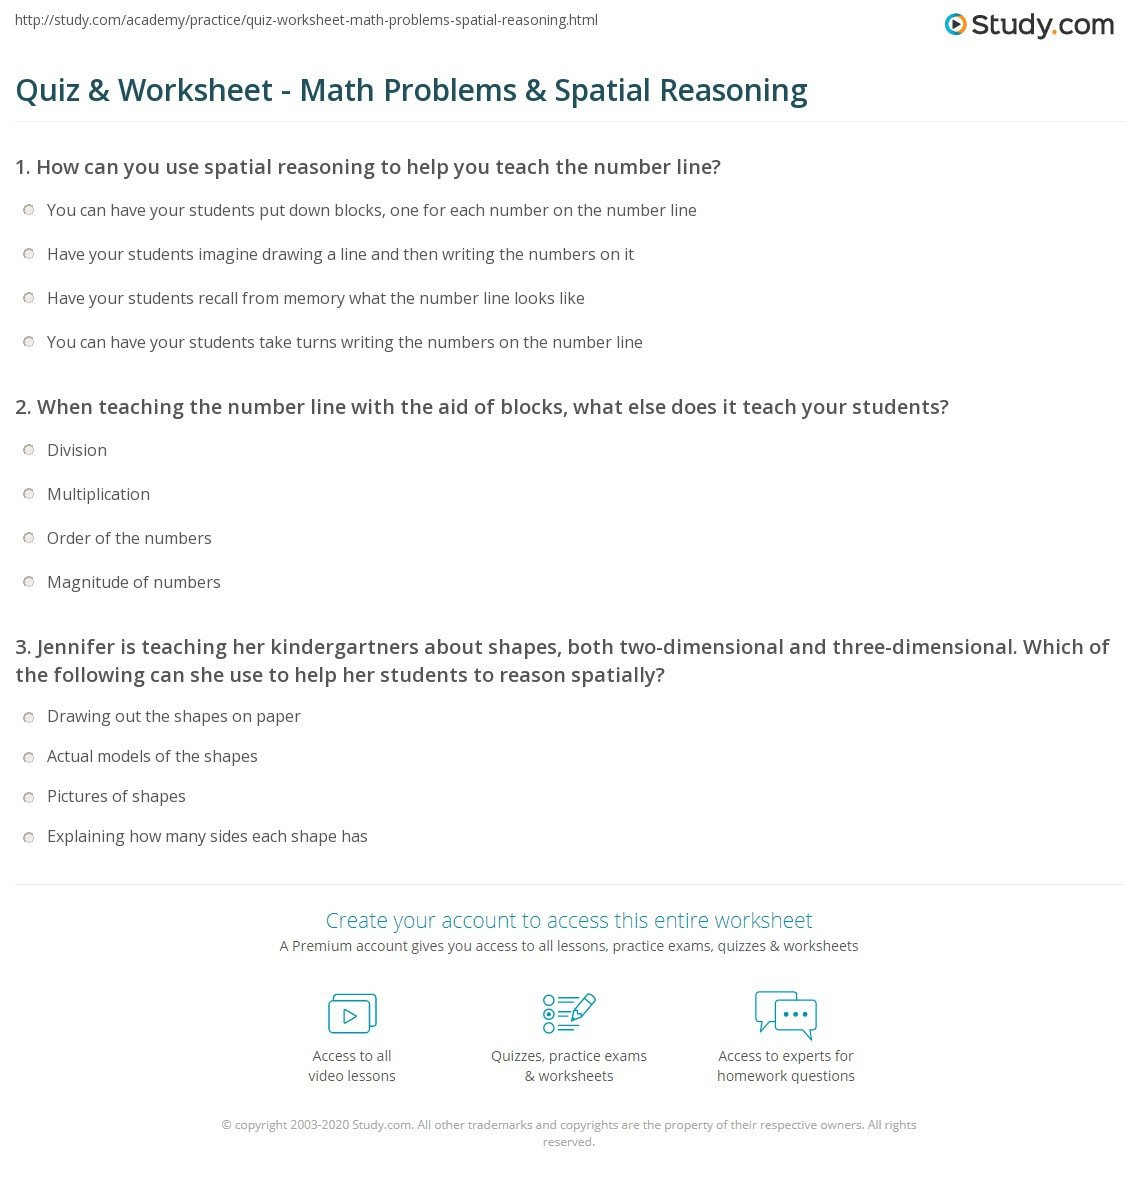 Spatial Reasoning Worksheets Quiz & Worksheet Math Problems & Spatial Reasoning